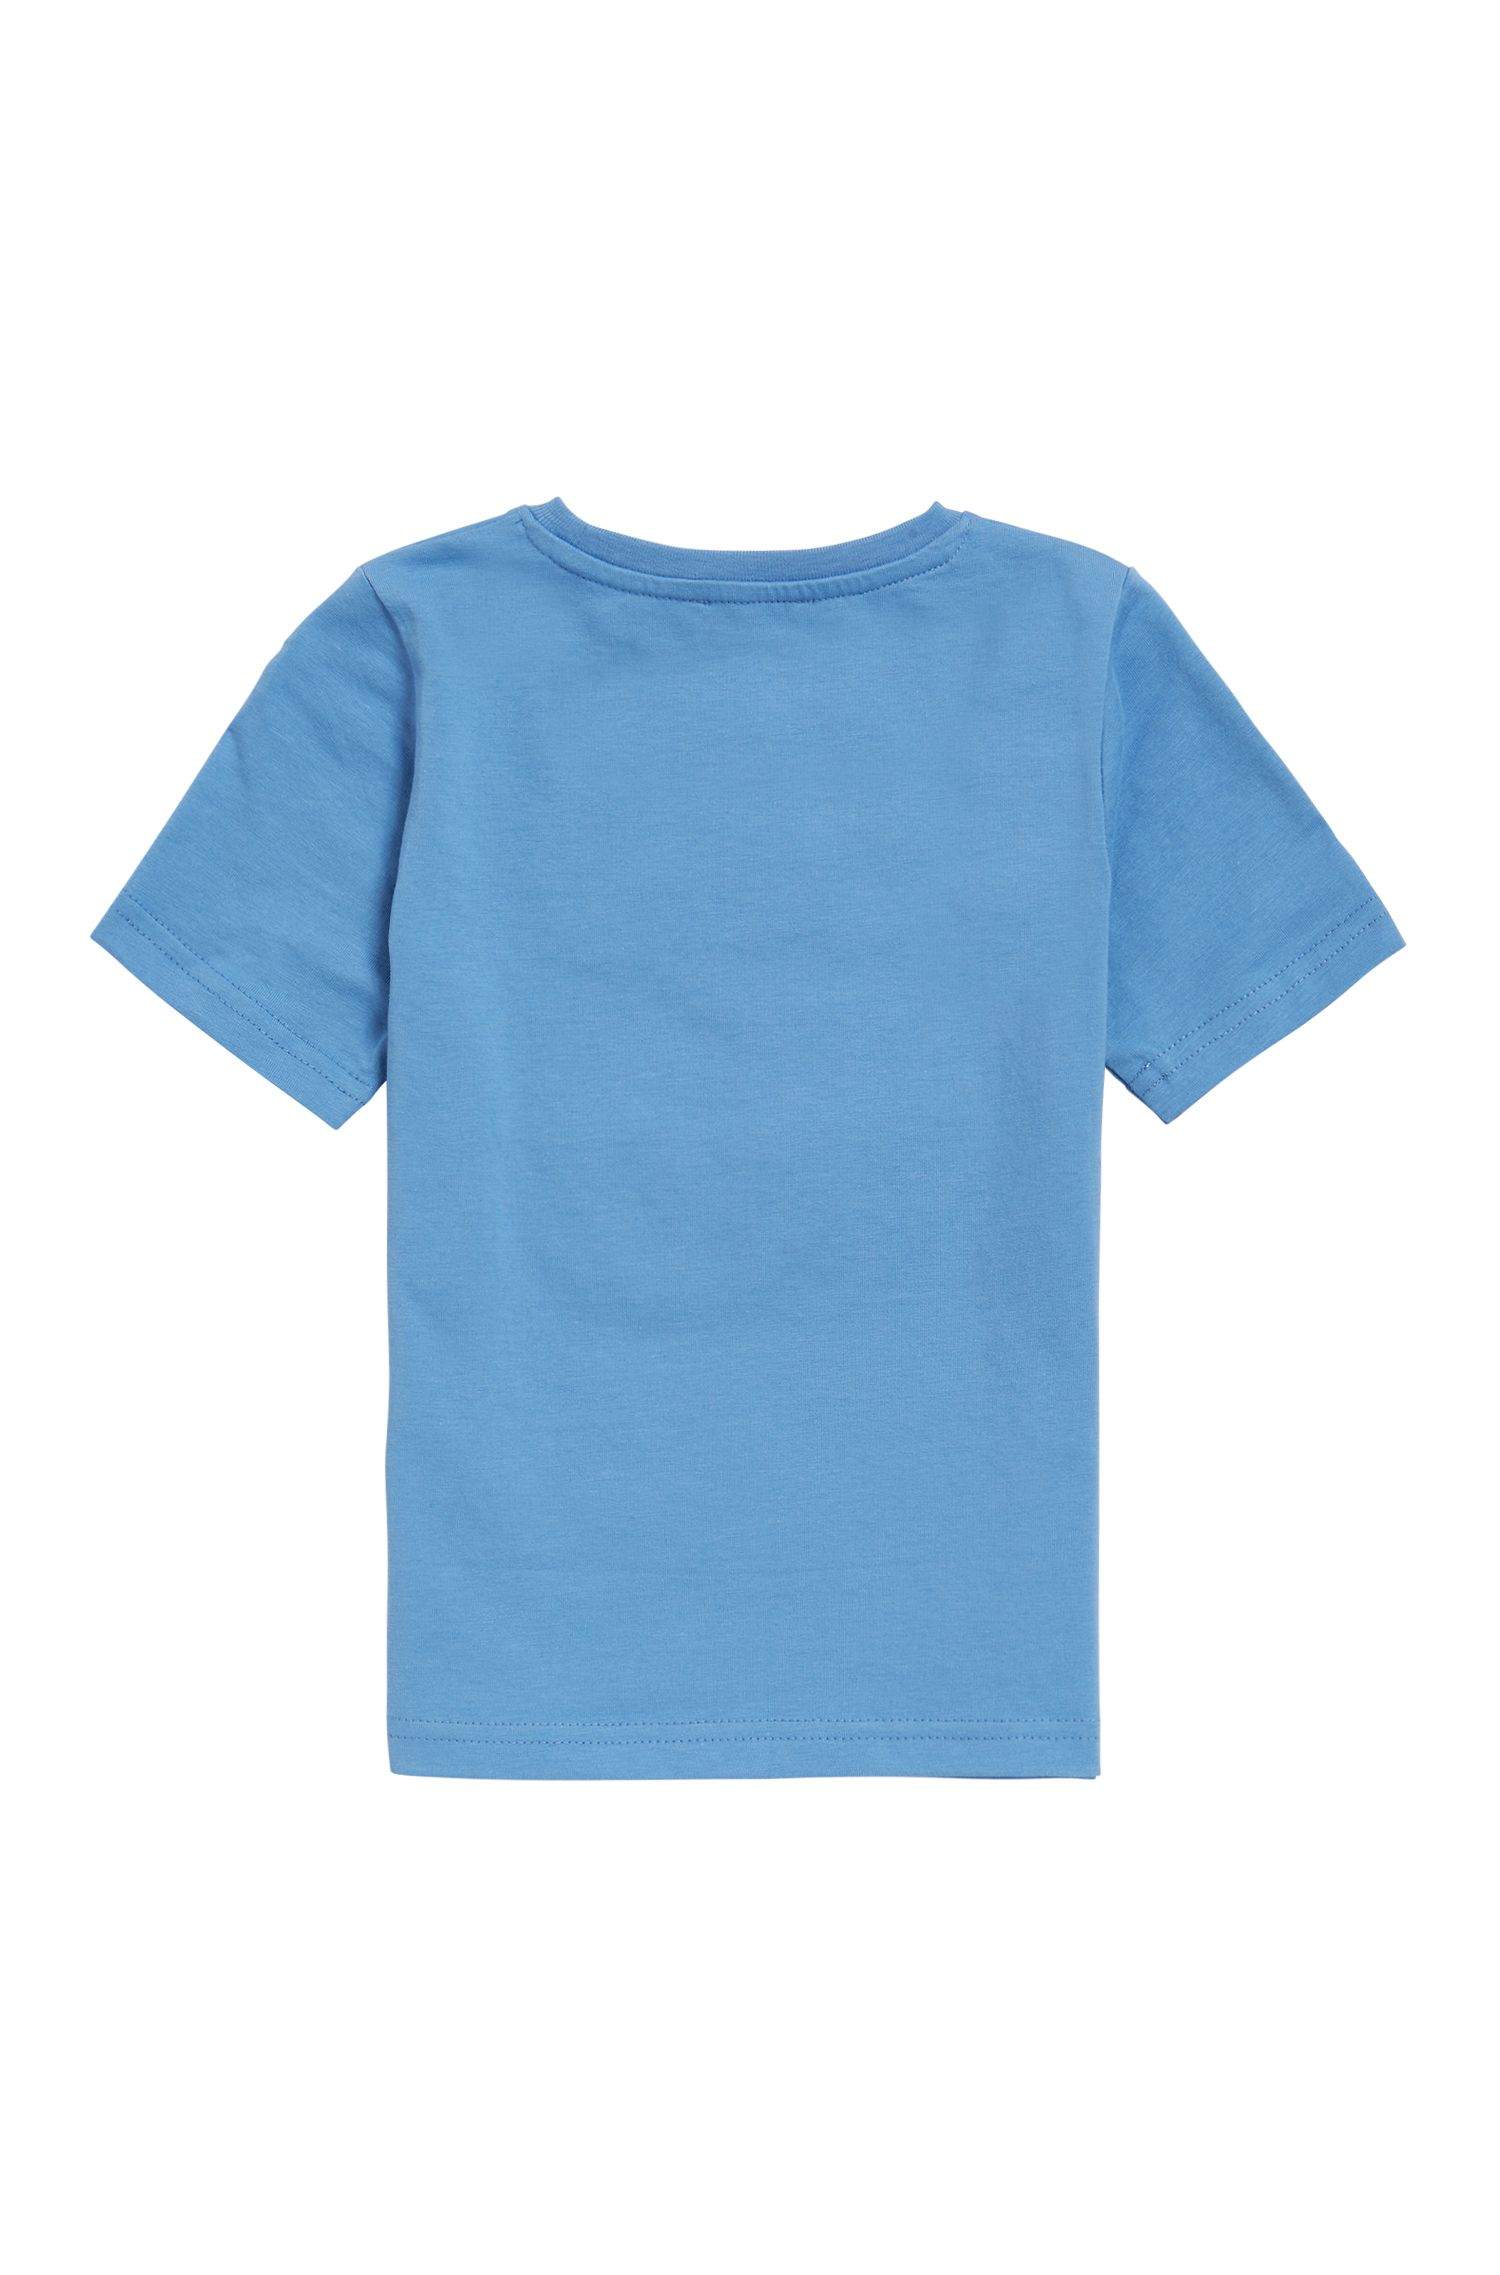 T-shirt enfant à logo en jersey de coton simple